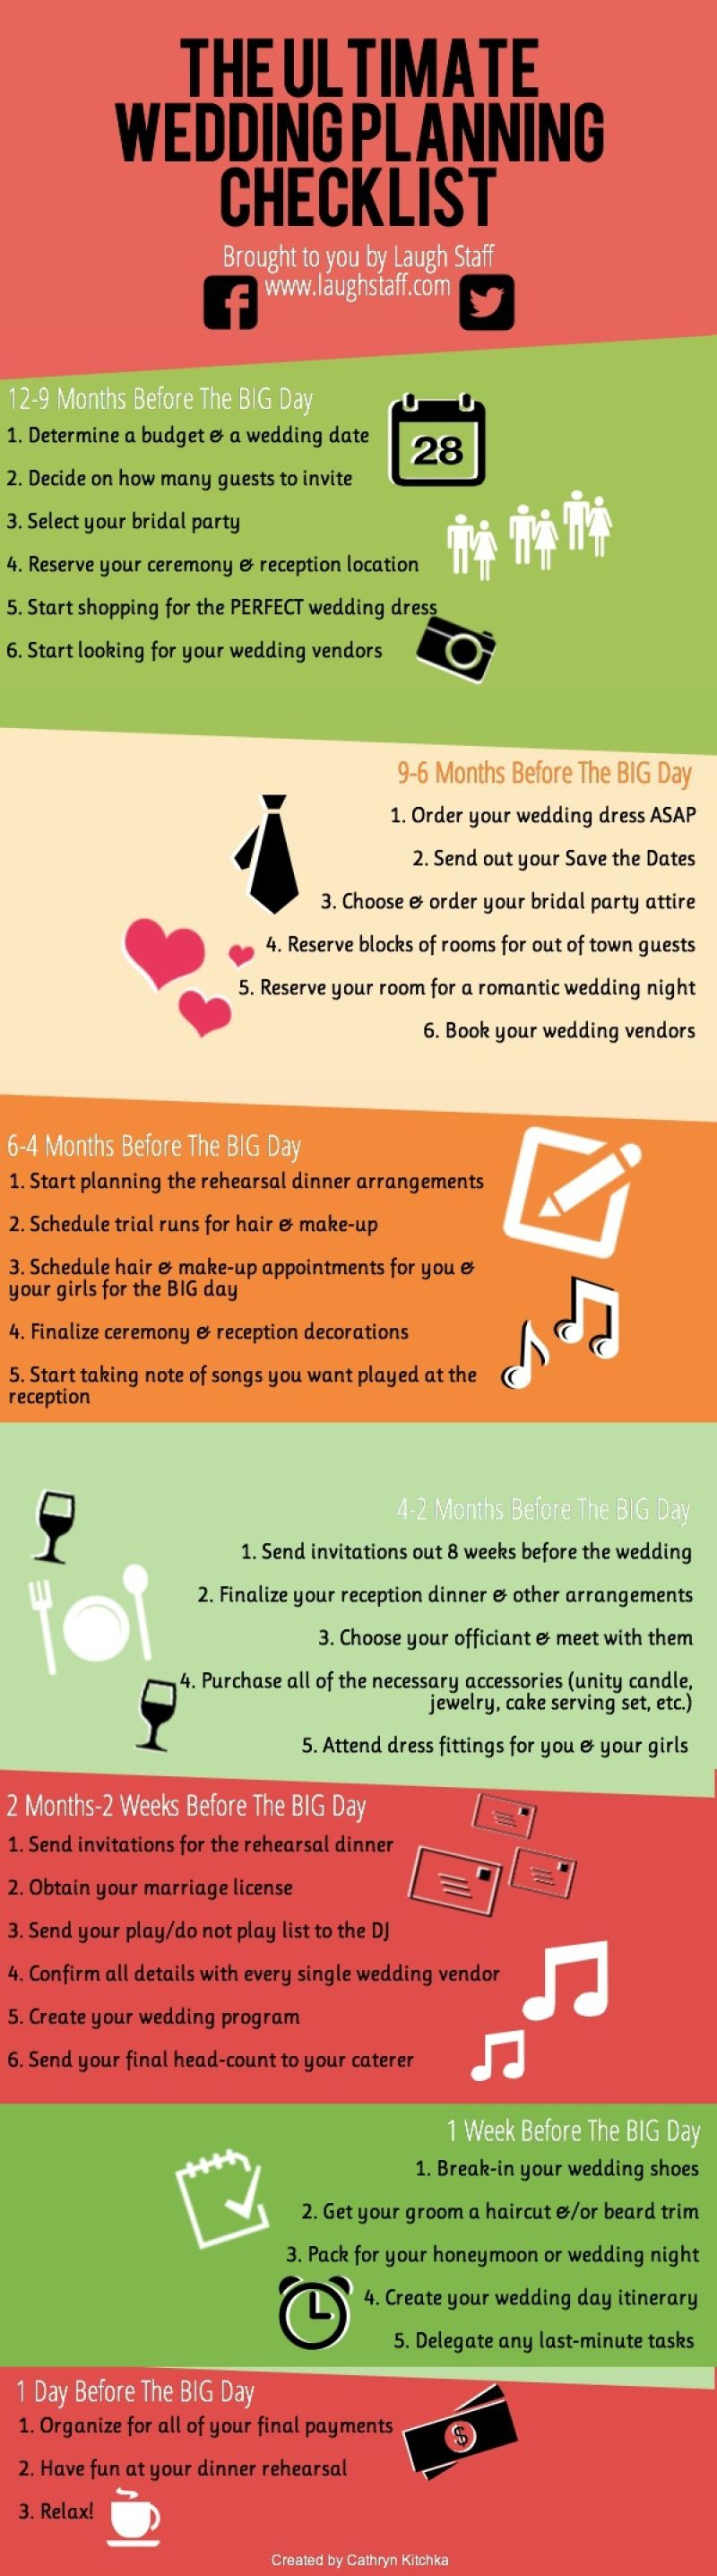 The Ultimate Wedding Checklist Won T Need This For A While But Still